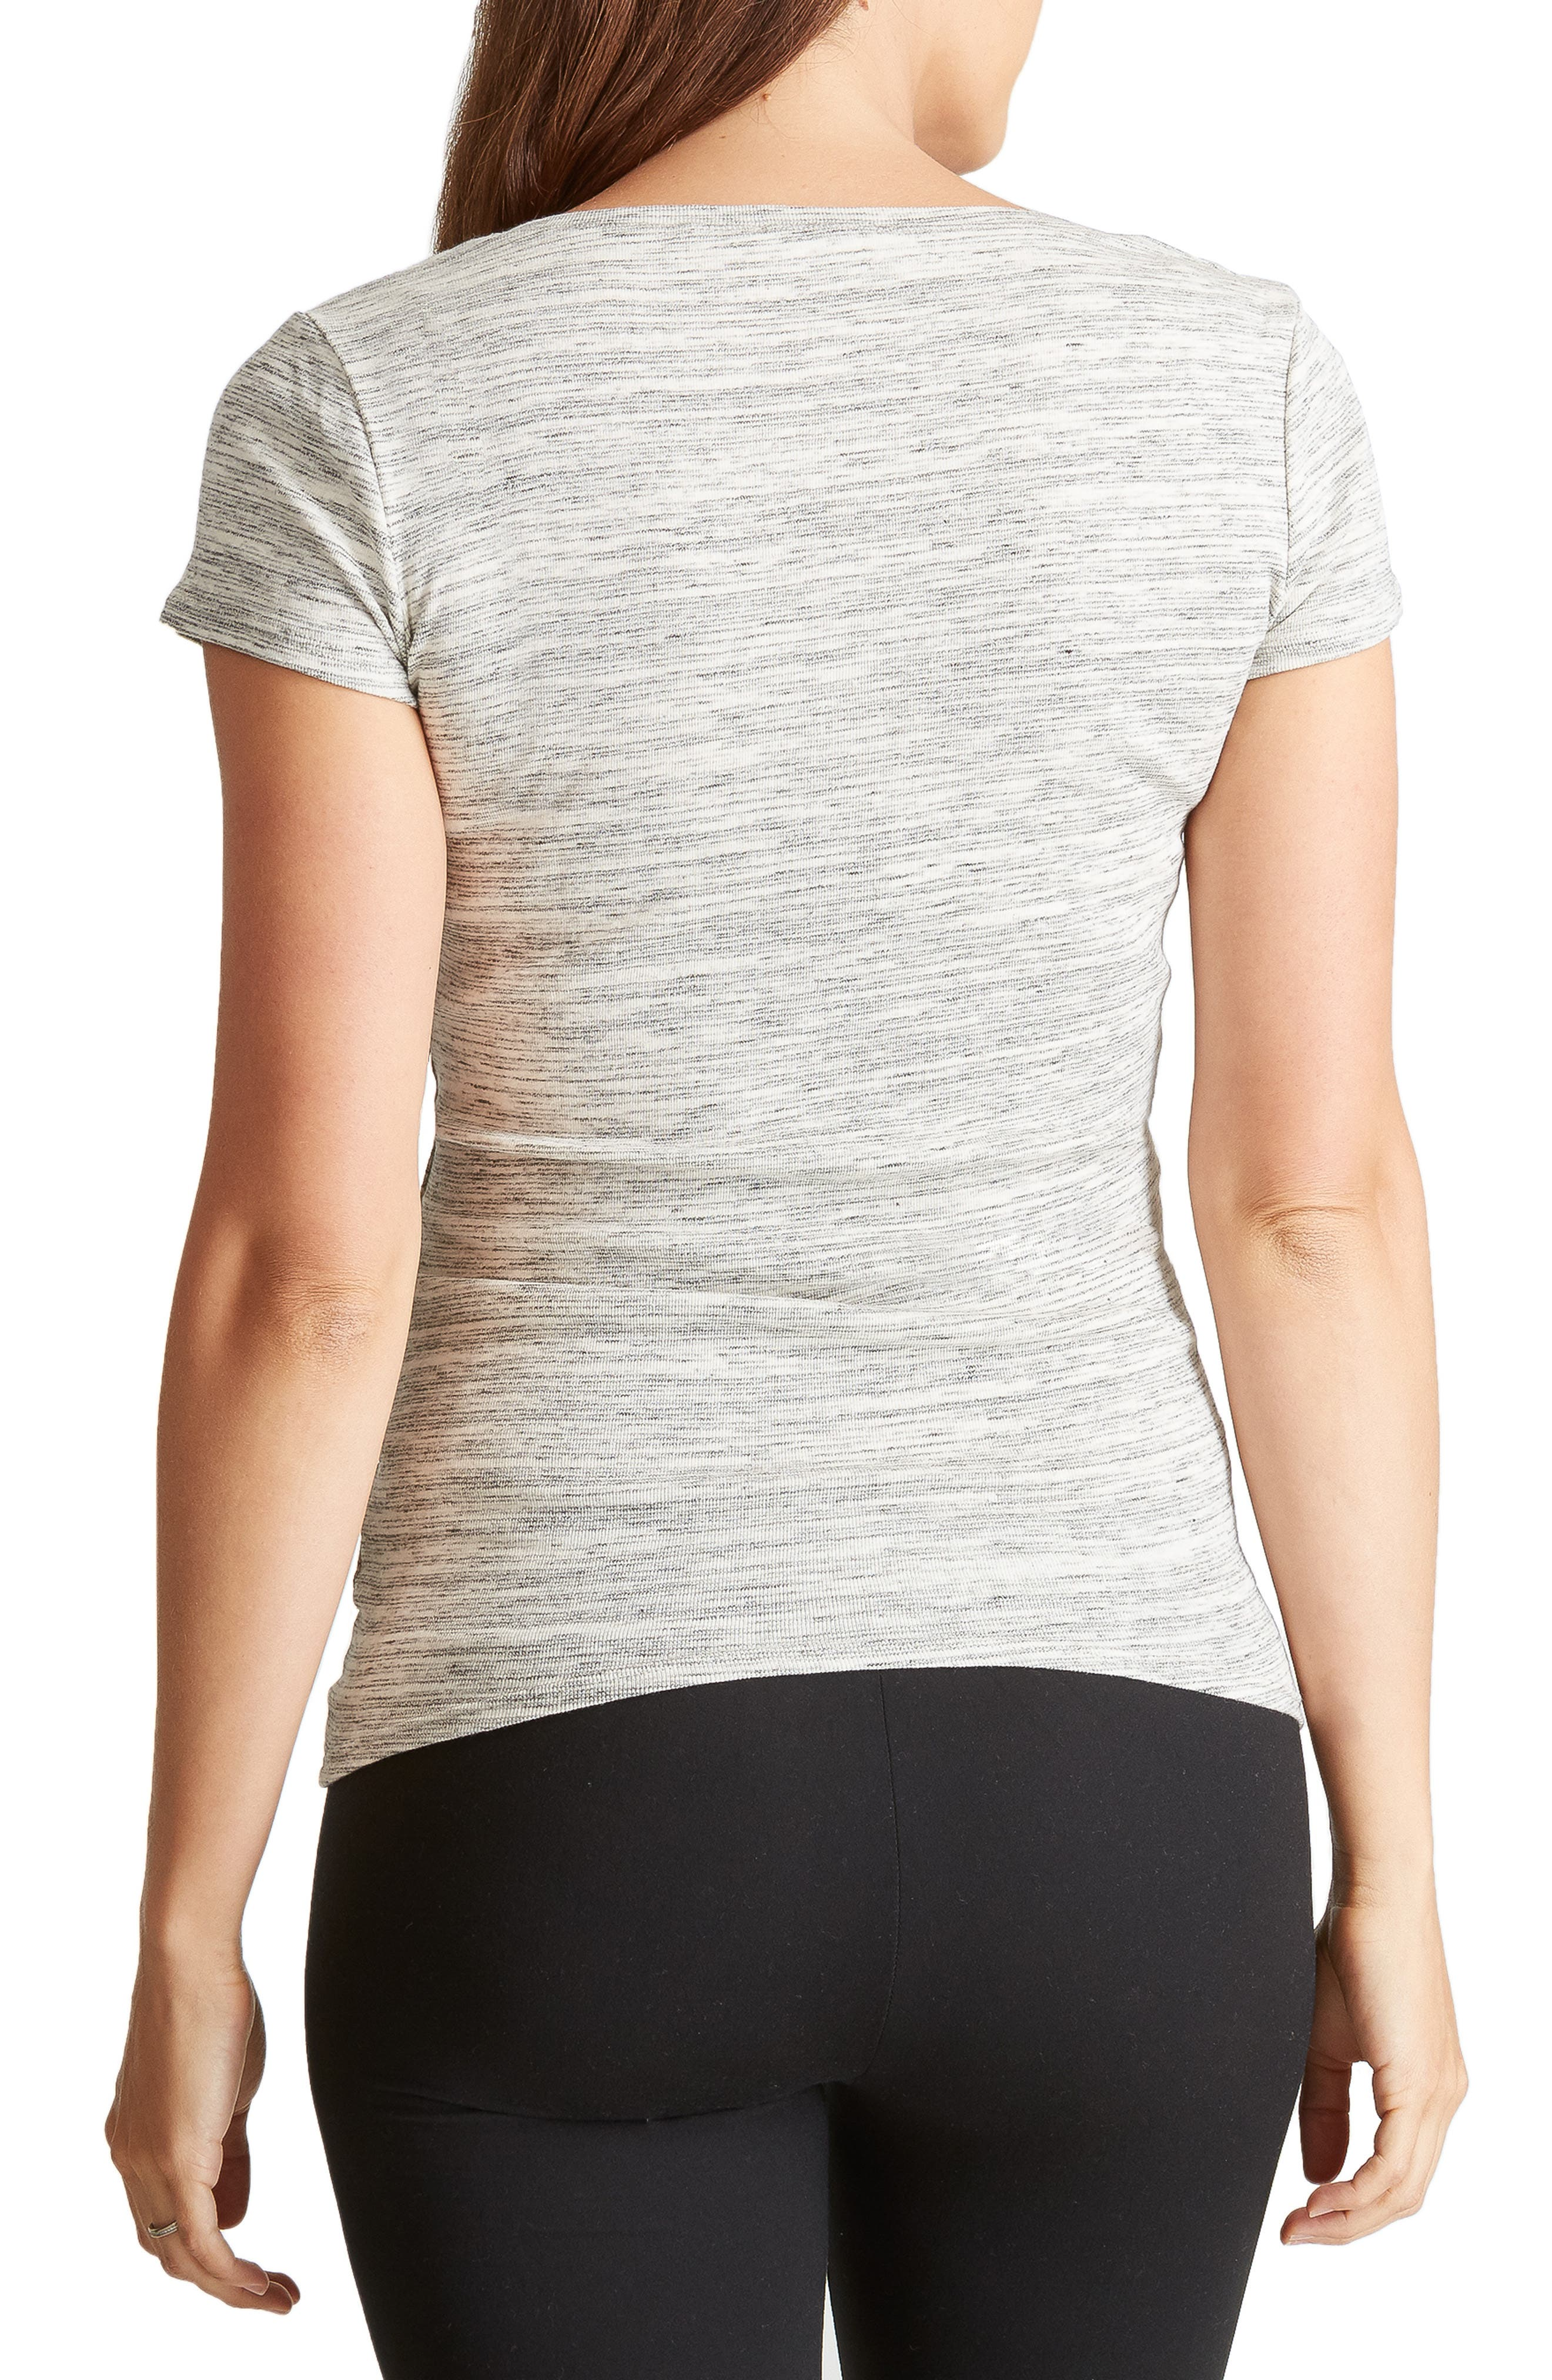 Ingrid & Isabel V-Neck Maternity Tee,                             Alternate thumbnail 2, color,                             060